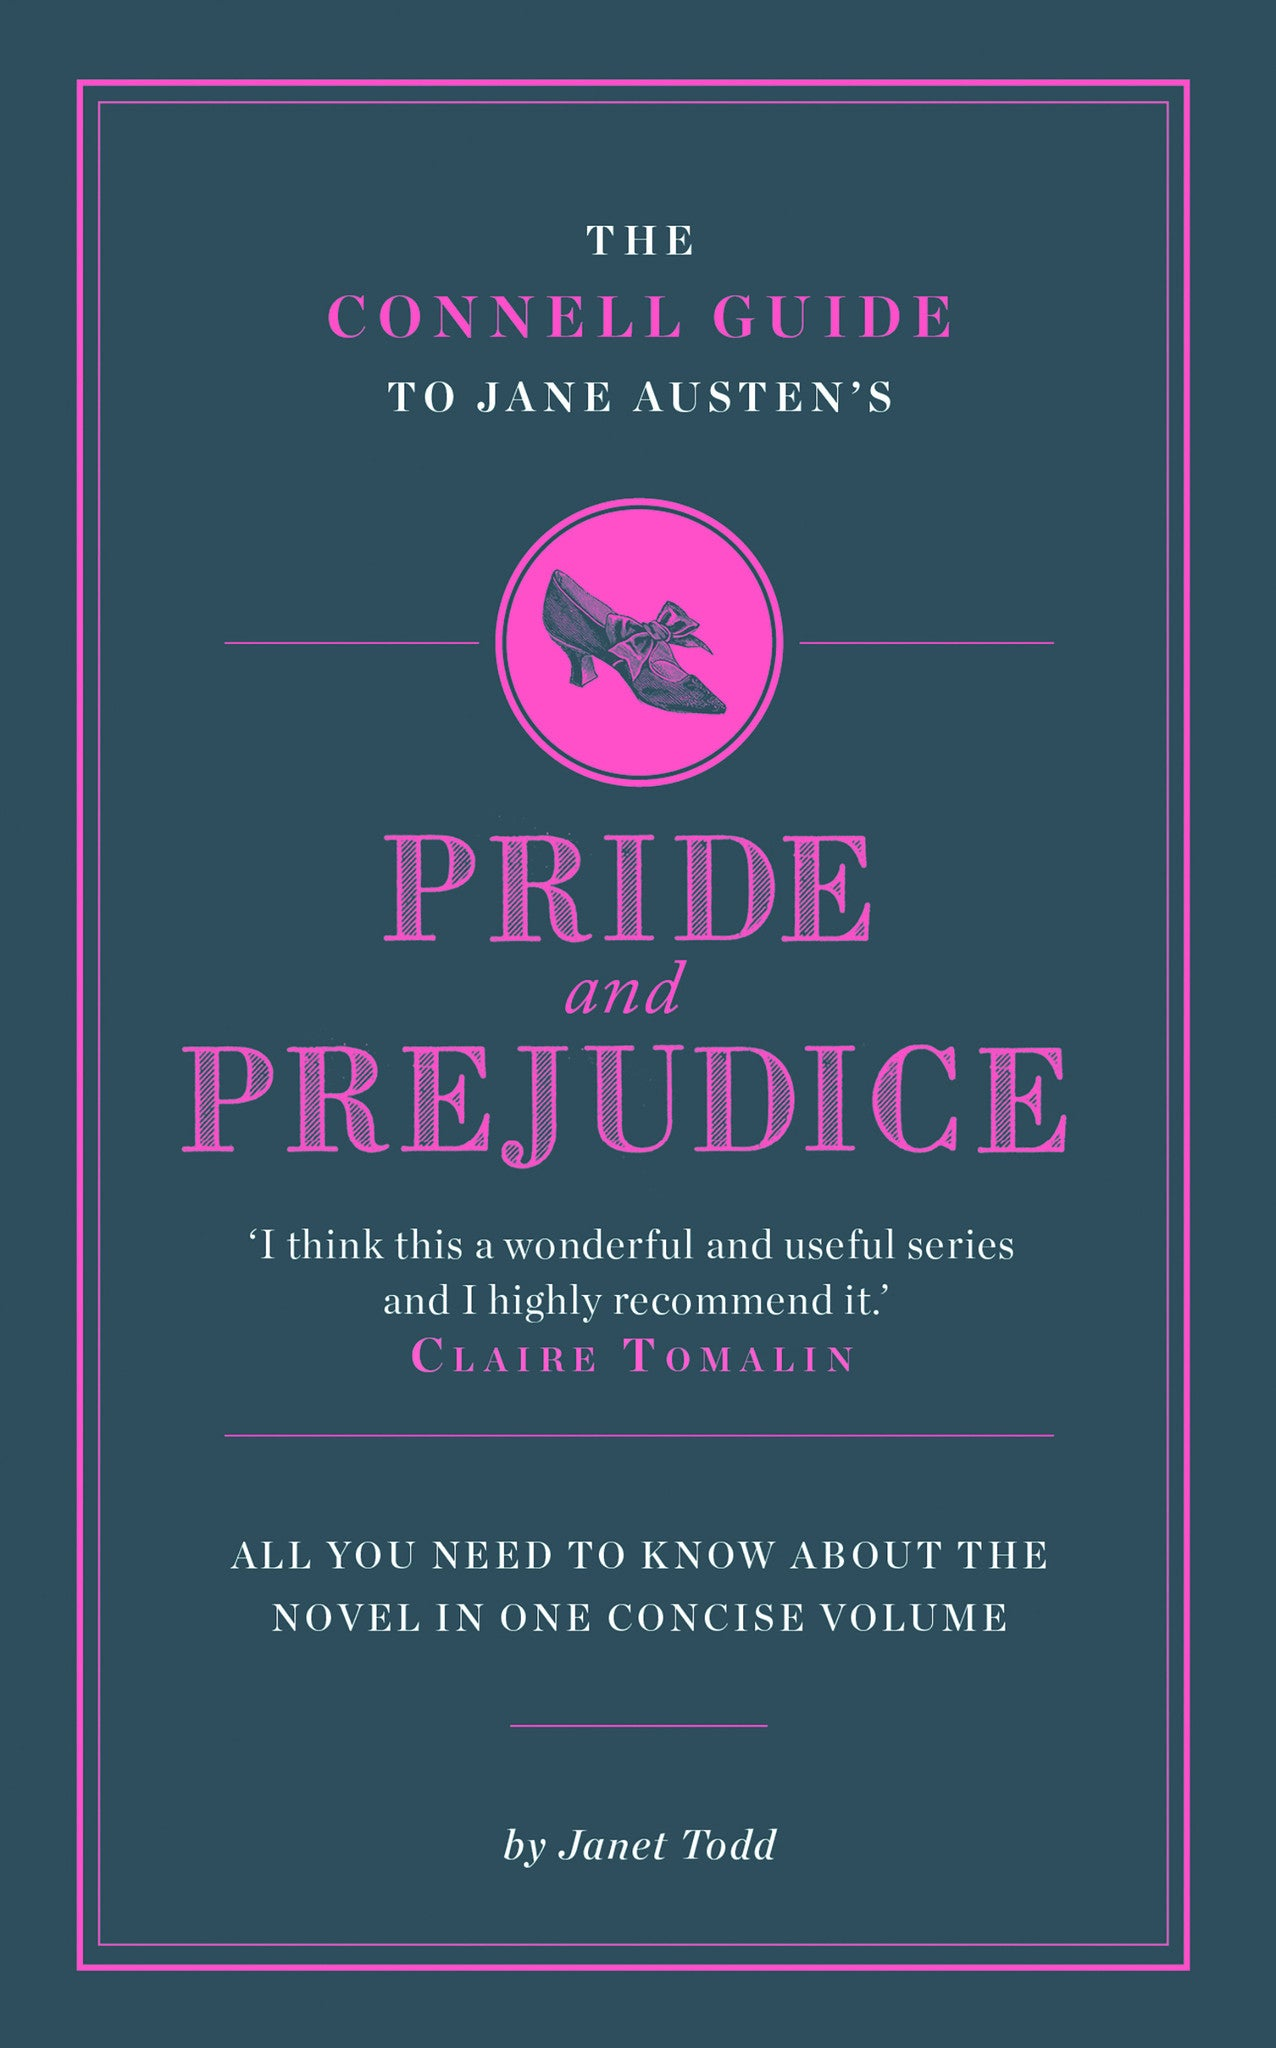 jane austen s pride and prejudice study guide connell guides jane austen s pride and prejudice study guide